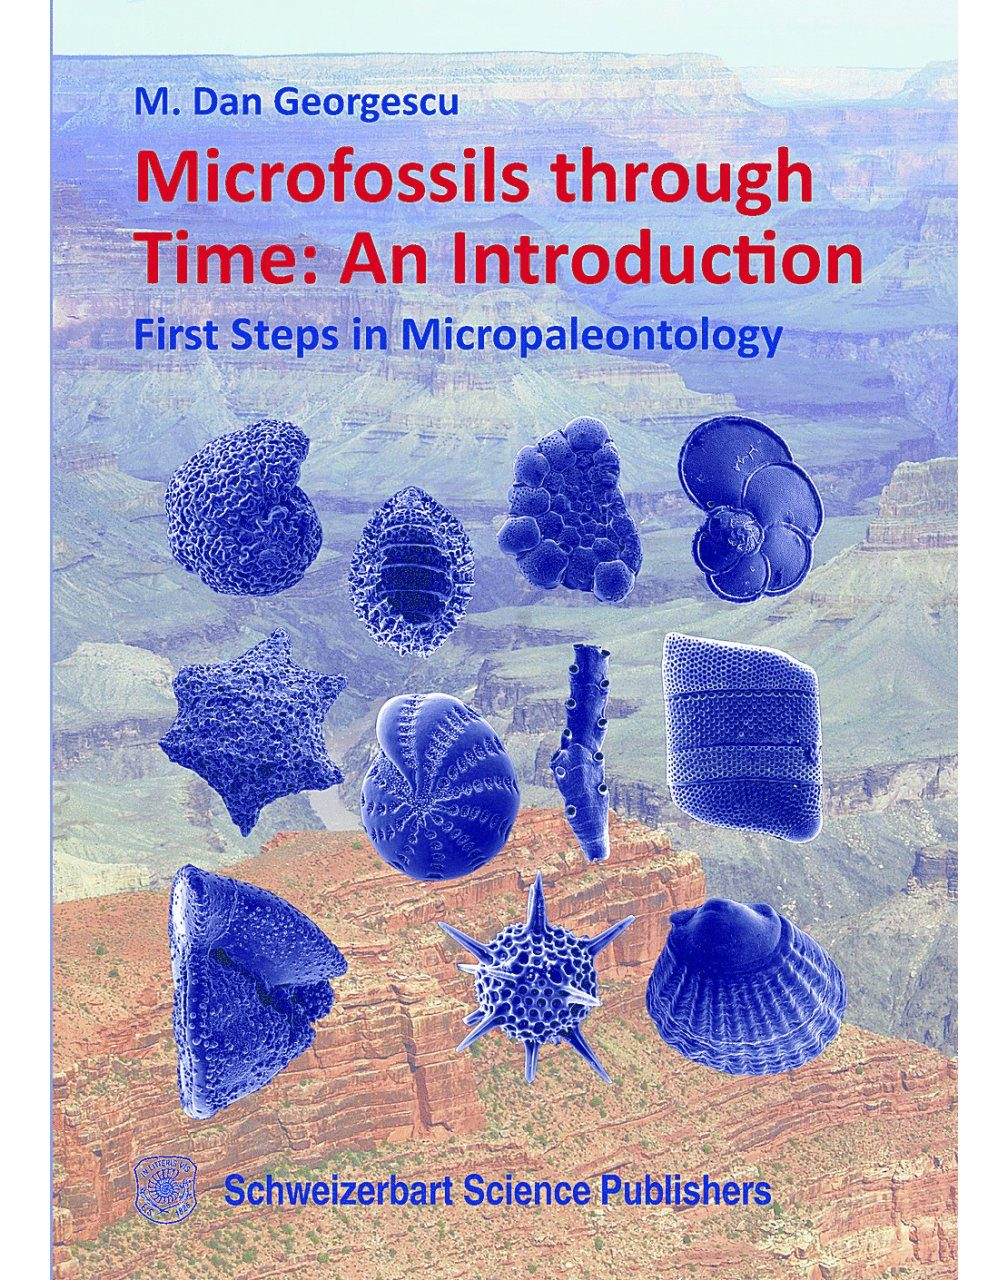 Microfossils through Time: An Introduction